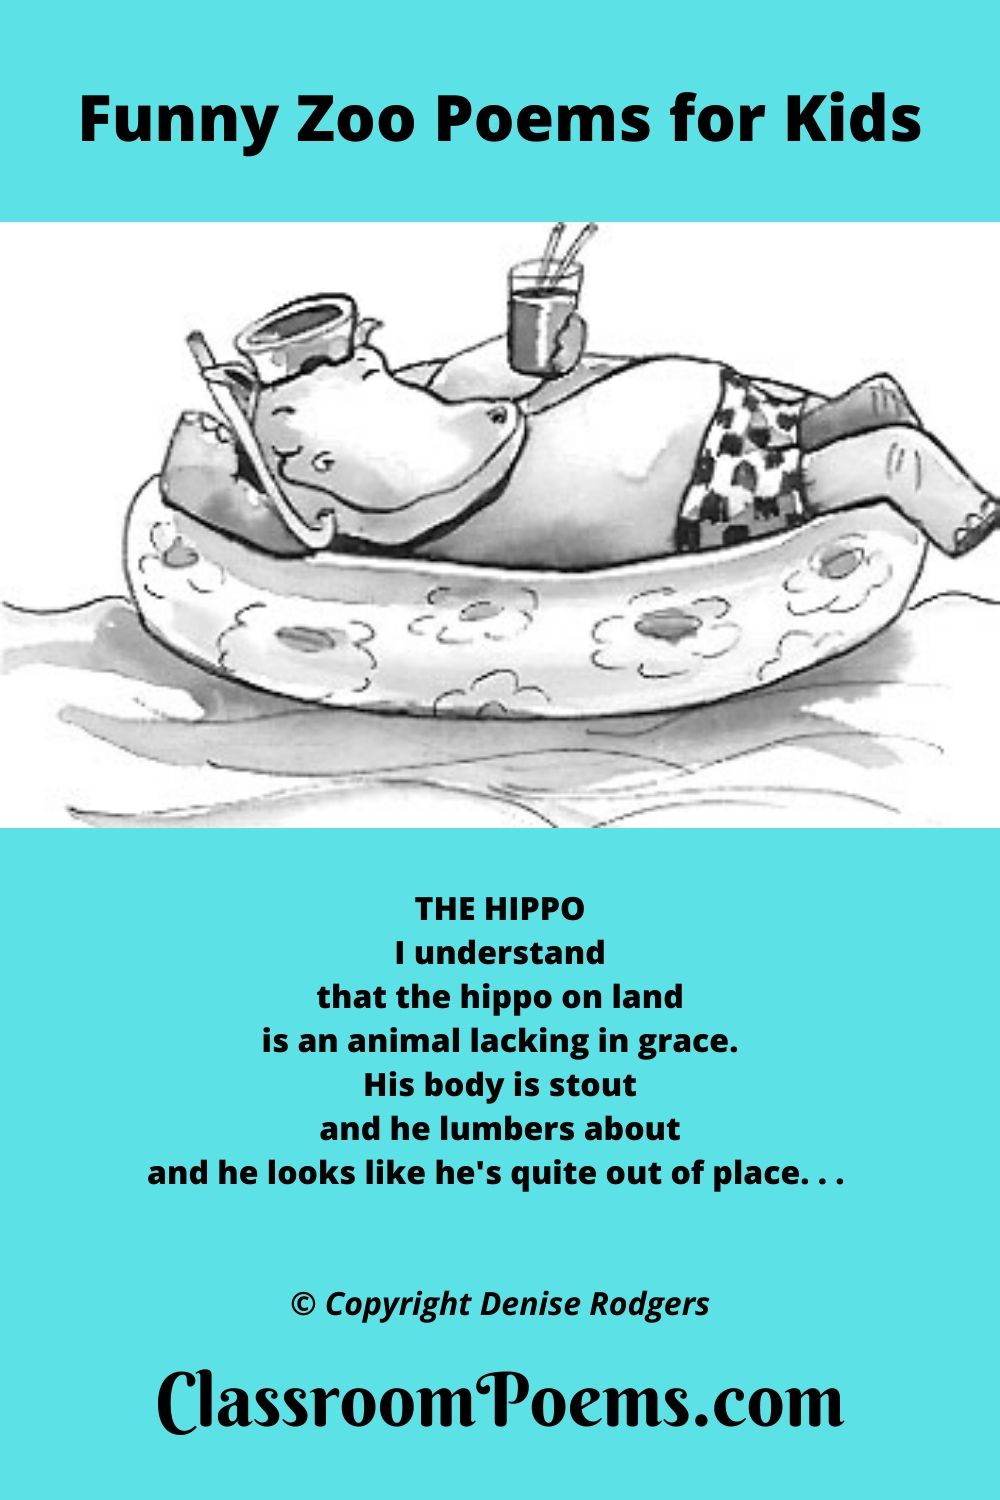 Hippo Poem. Floating hippo. Funny hippo poem by Denise Rodgers on ClassroomPoems.com.